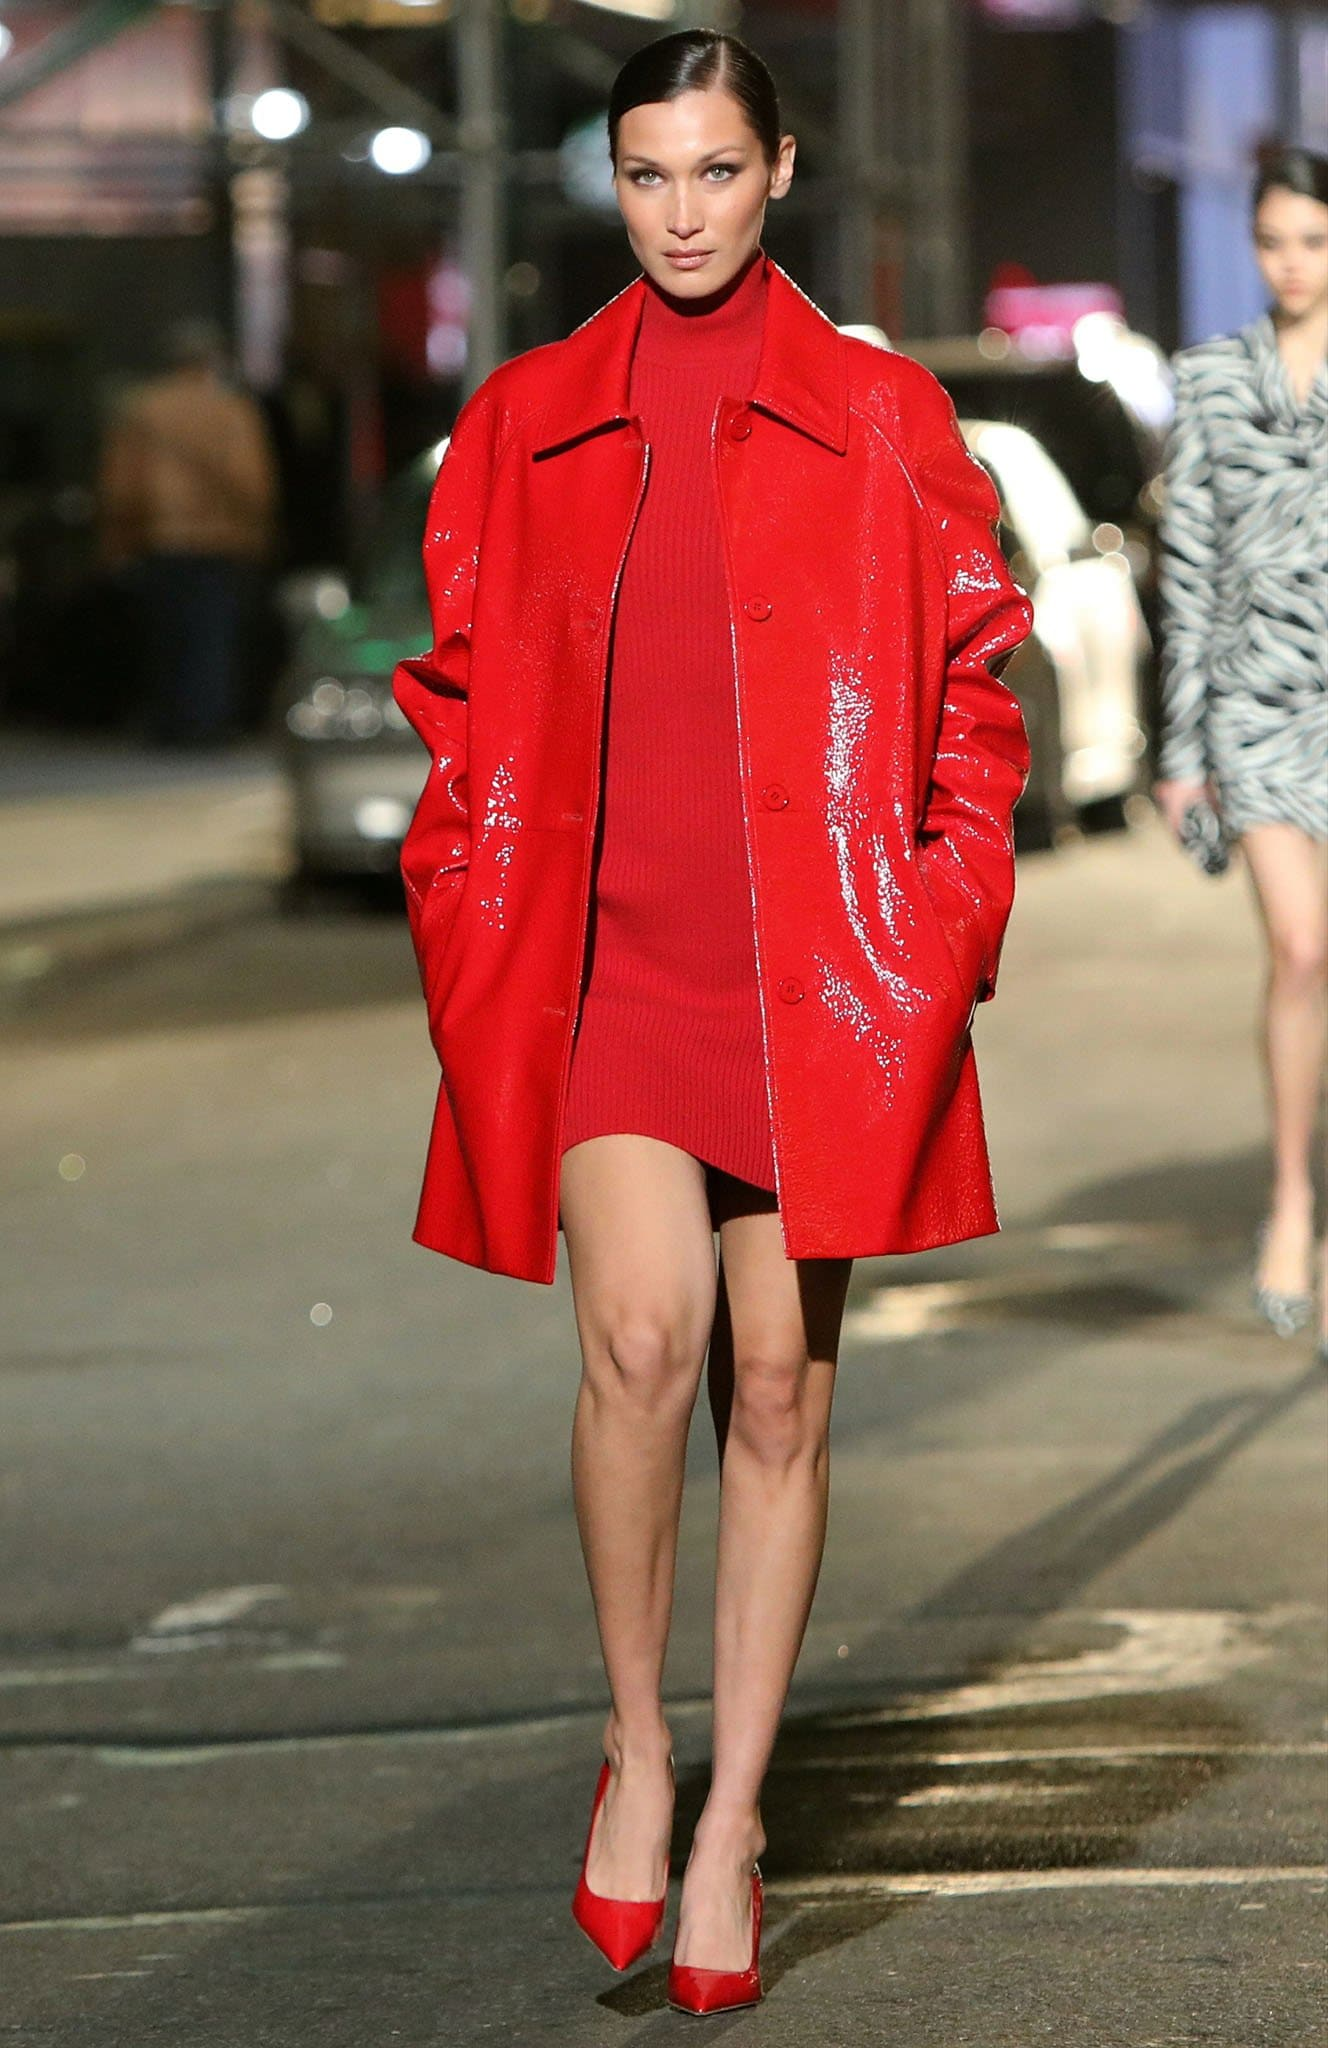 Bella Hadid bares her legs in a red mini dress and red PVC coat